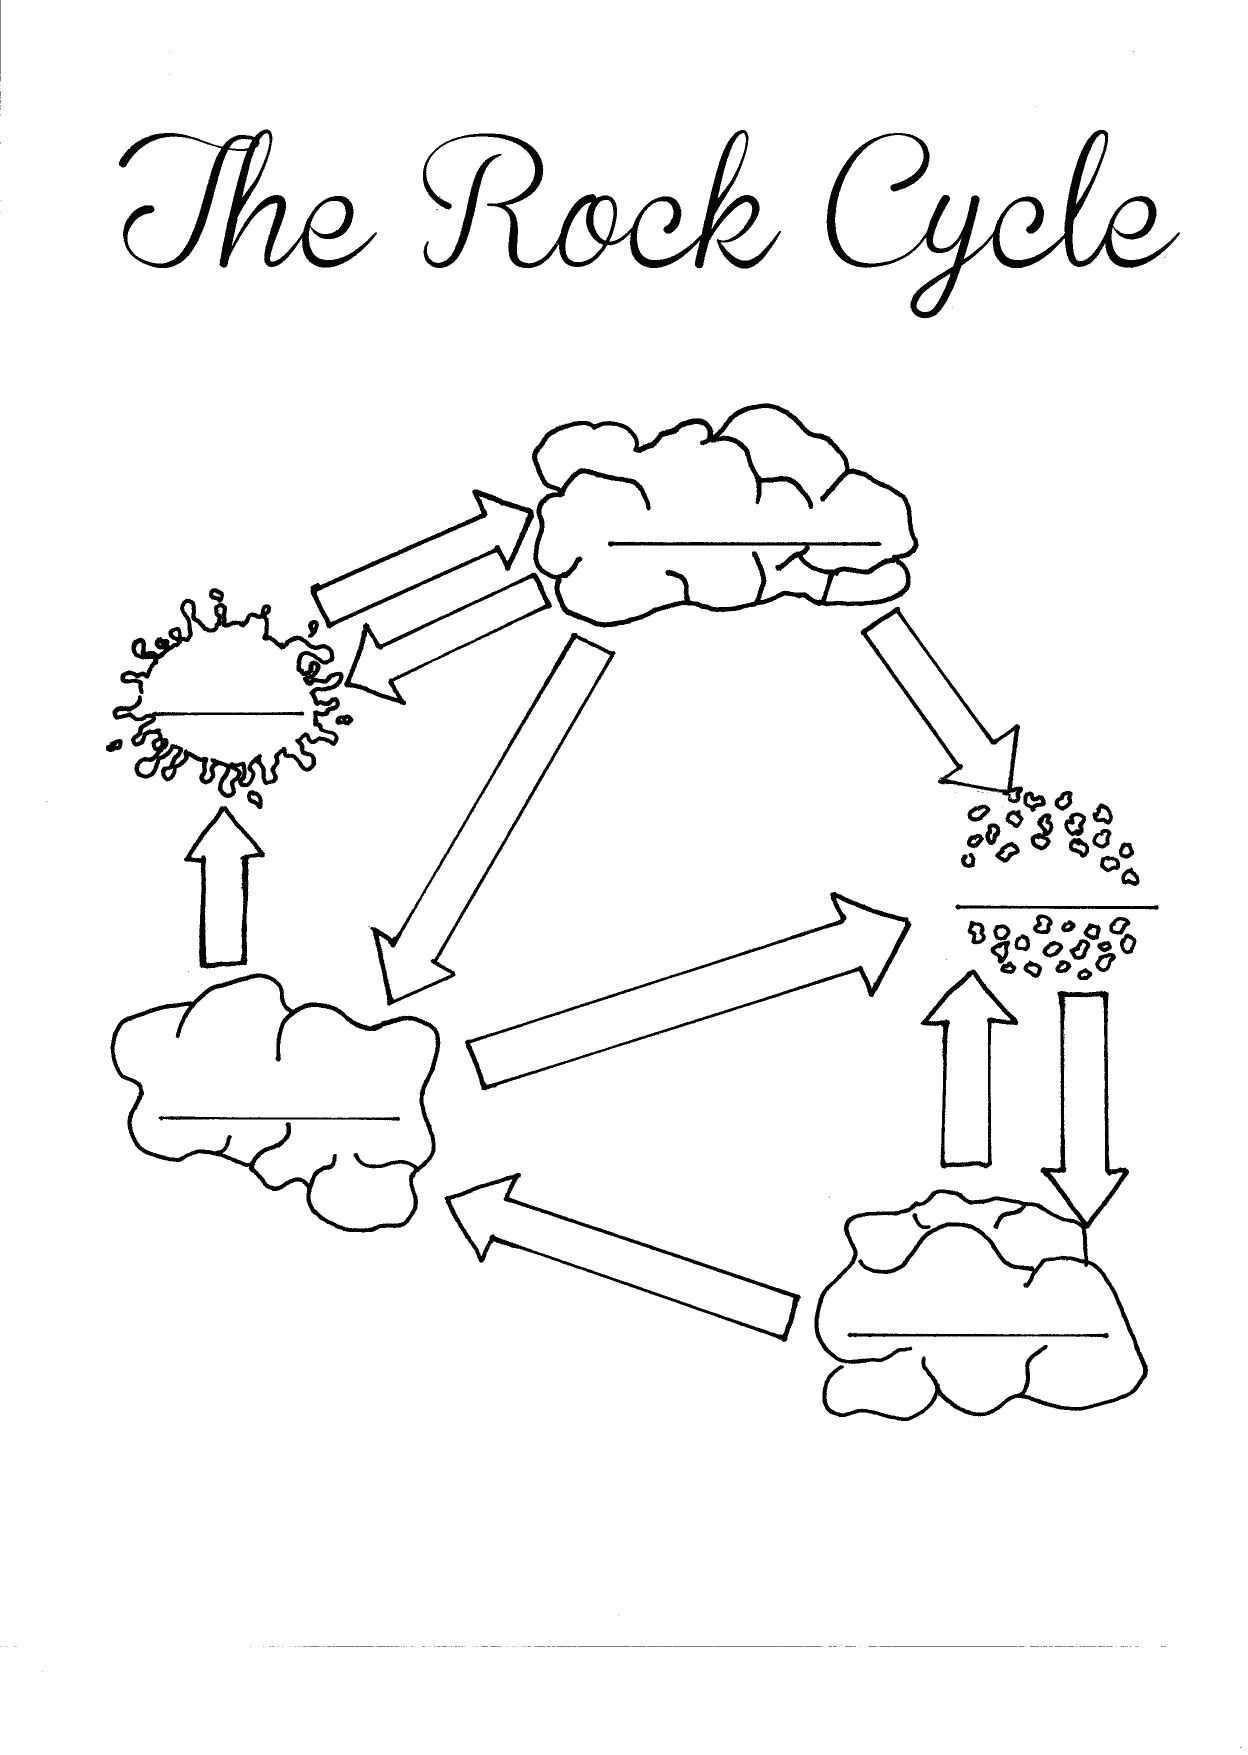 Worksheets The Rock Cycle Worksheet the rock cycle blank worksheet fill in as you talk about or go through using crayons